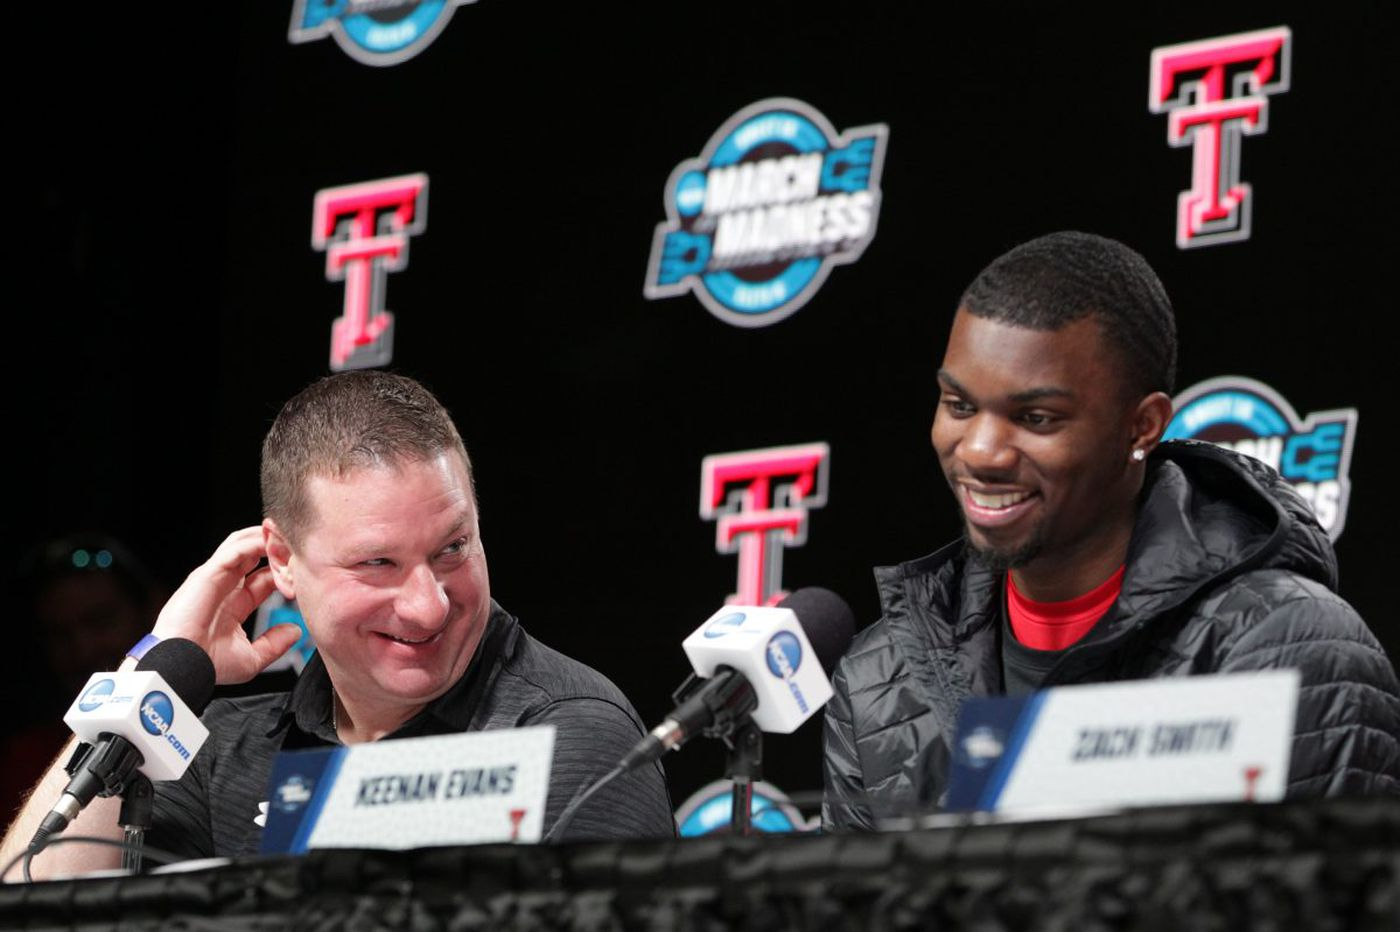 Beard could not resist the lure of returning to Texas Tech